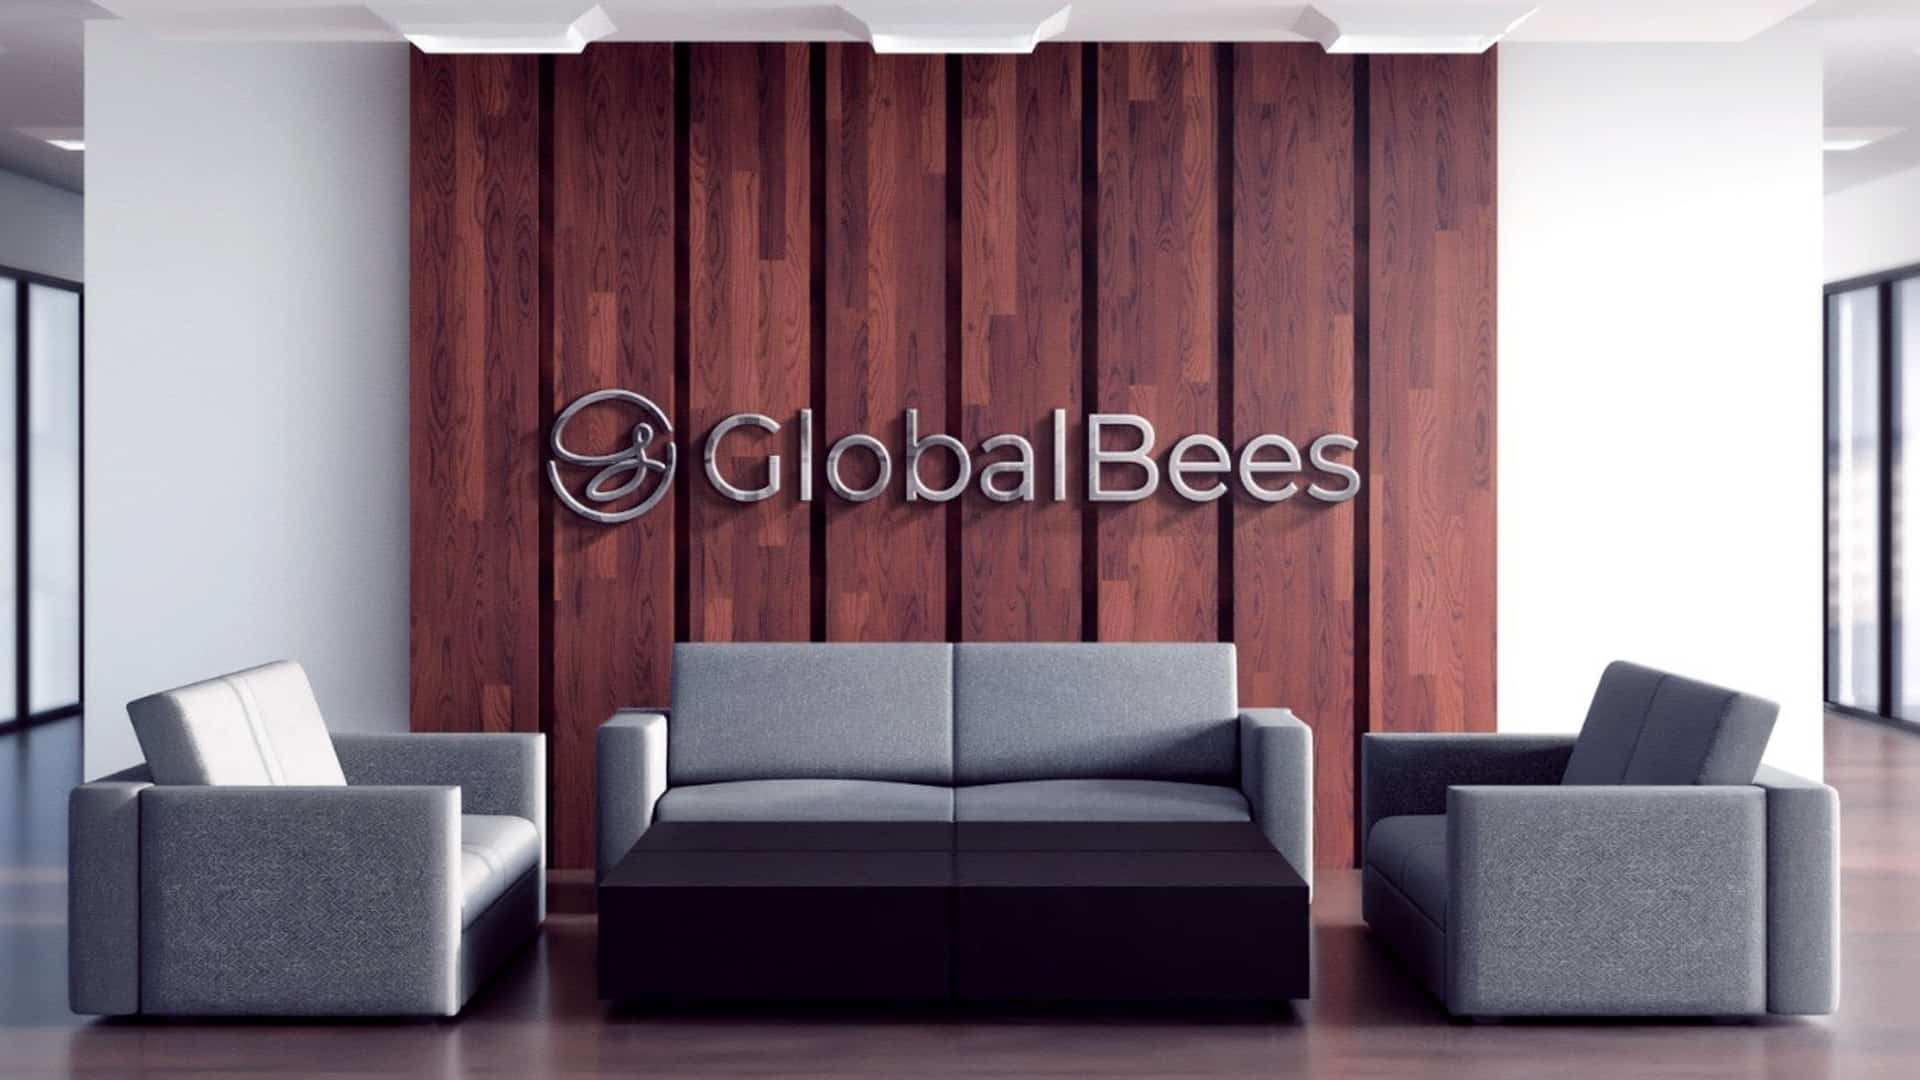 GlobalBees raises $150Mn in Series A Funding round - TechStory